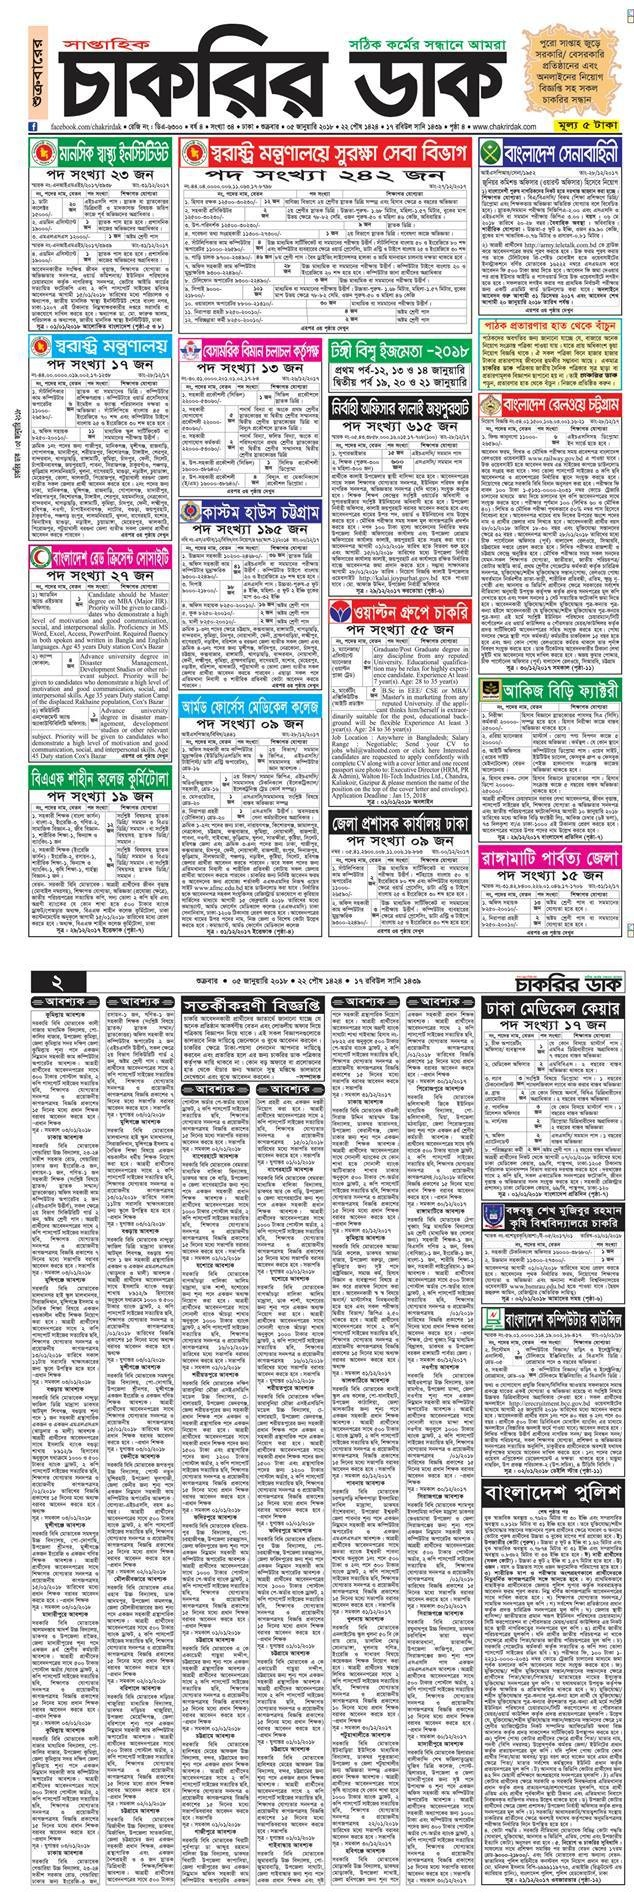 Weekly Jobs Newspaper January 2018